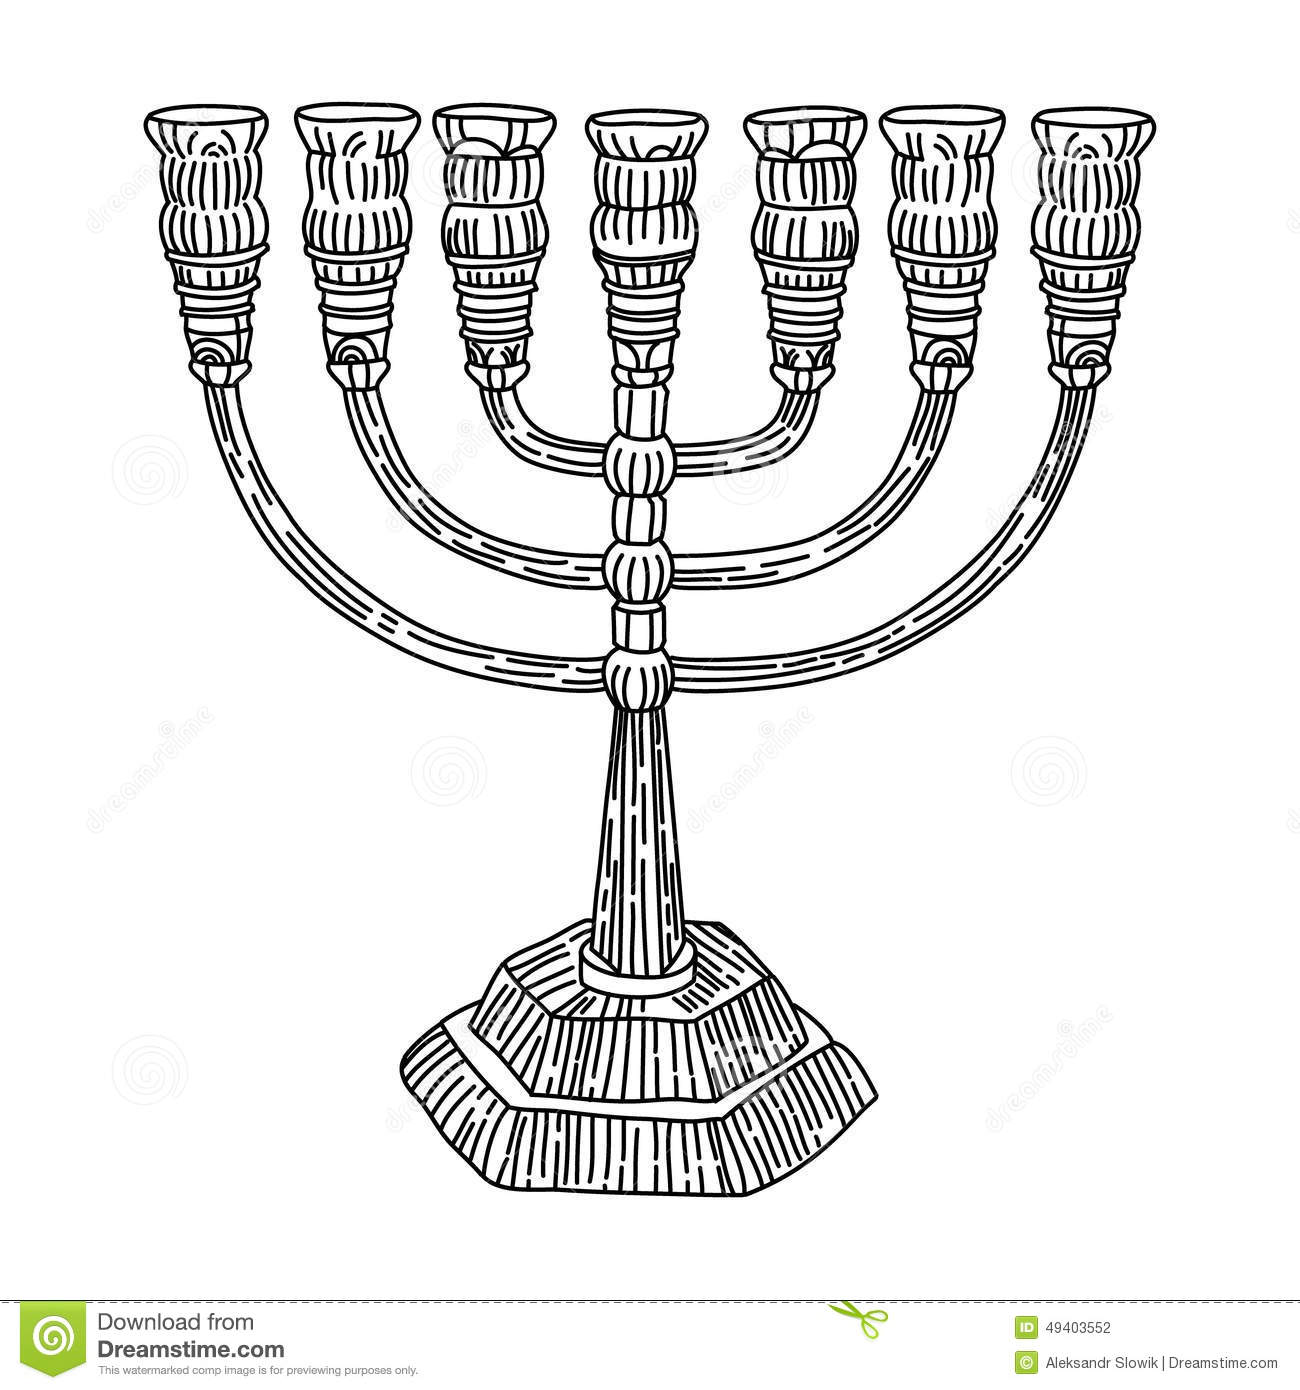 Download Menorah-Judentum vektor abbildung. Illustration von menorah - 49403552